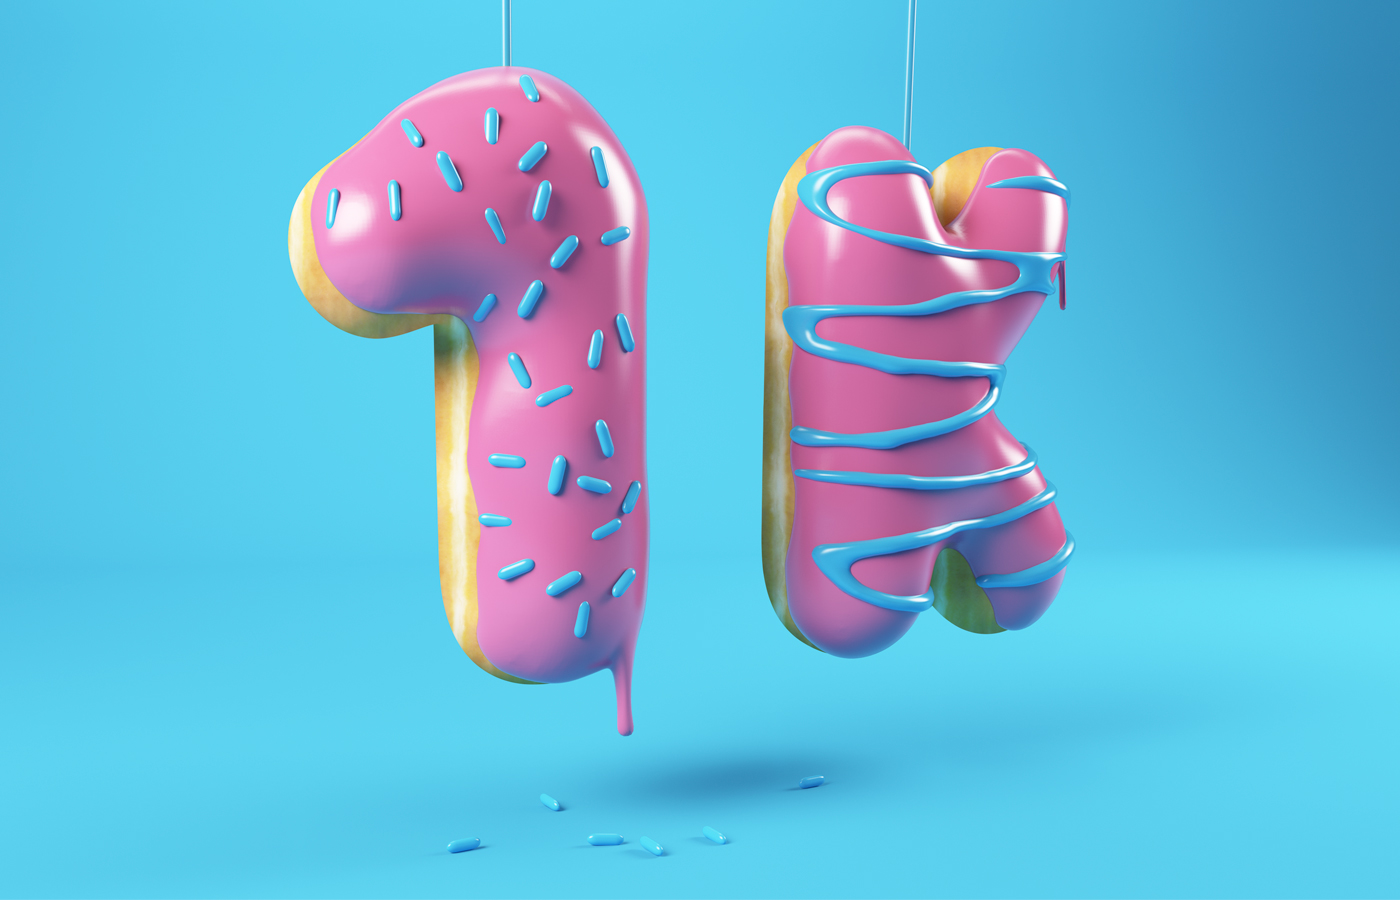 3DLETTERING CESS 3D 3DTYPE LETTERING CGI 3DARTIST DONUT YUMBERS